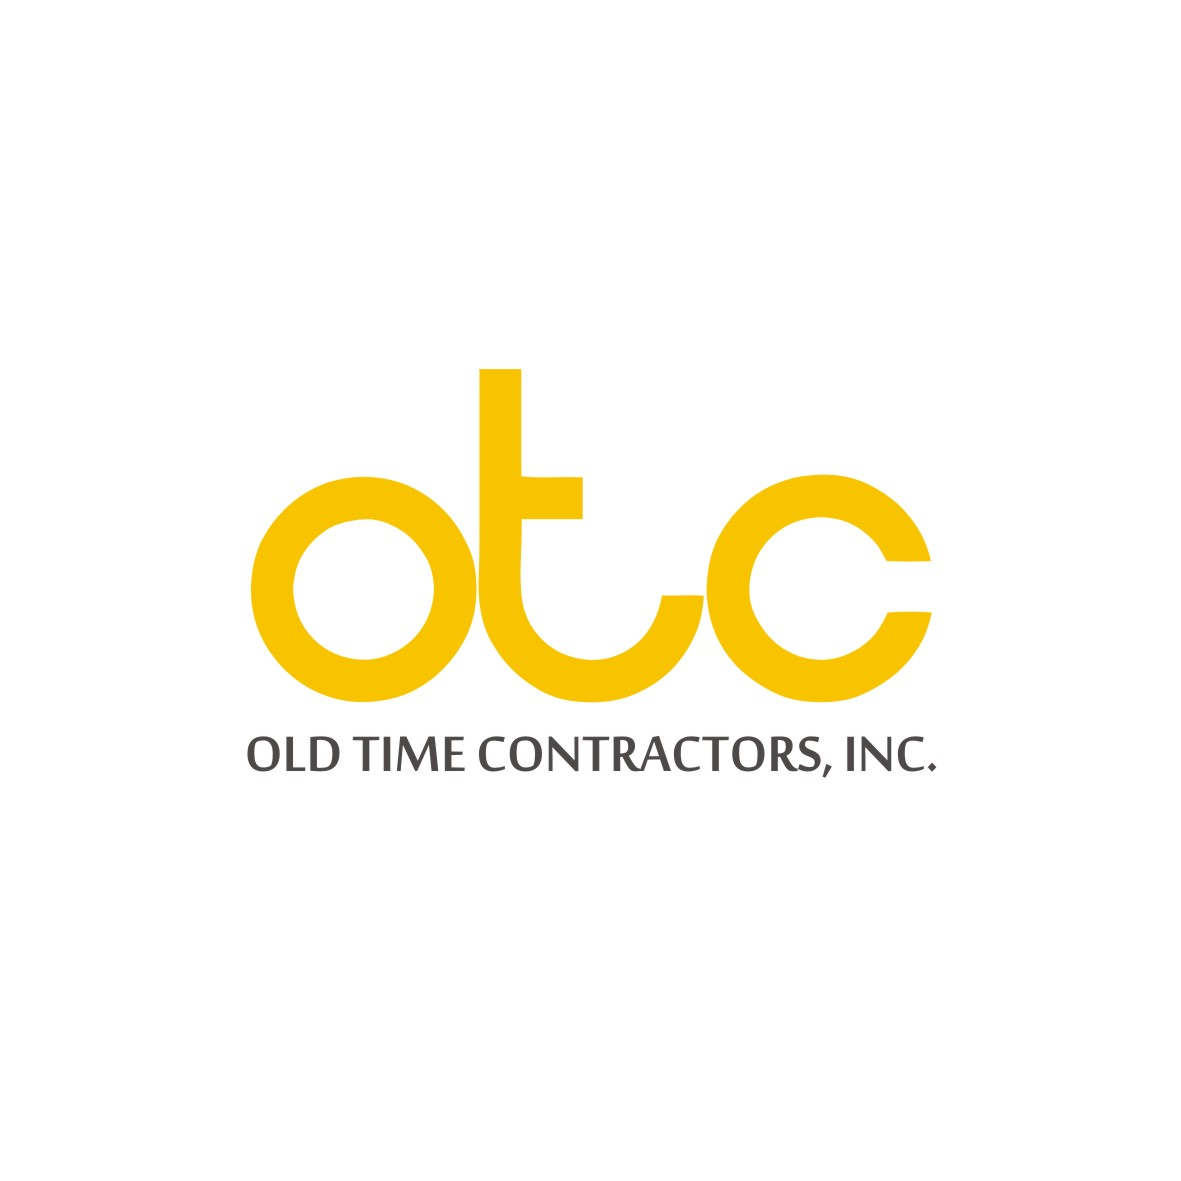 Logo Design by arteo_design - Entry No. 114 in the Logo Design Contest Old Time Contractors, Inc. (new brand:  OTC, Inc.) Logo Design.